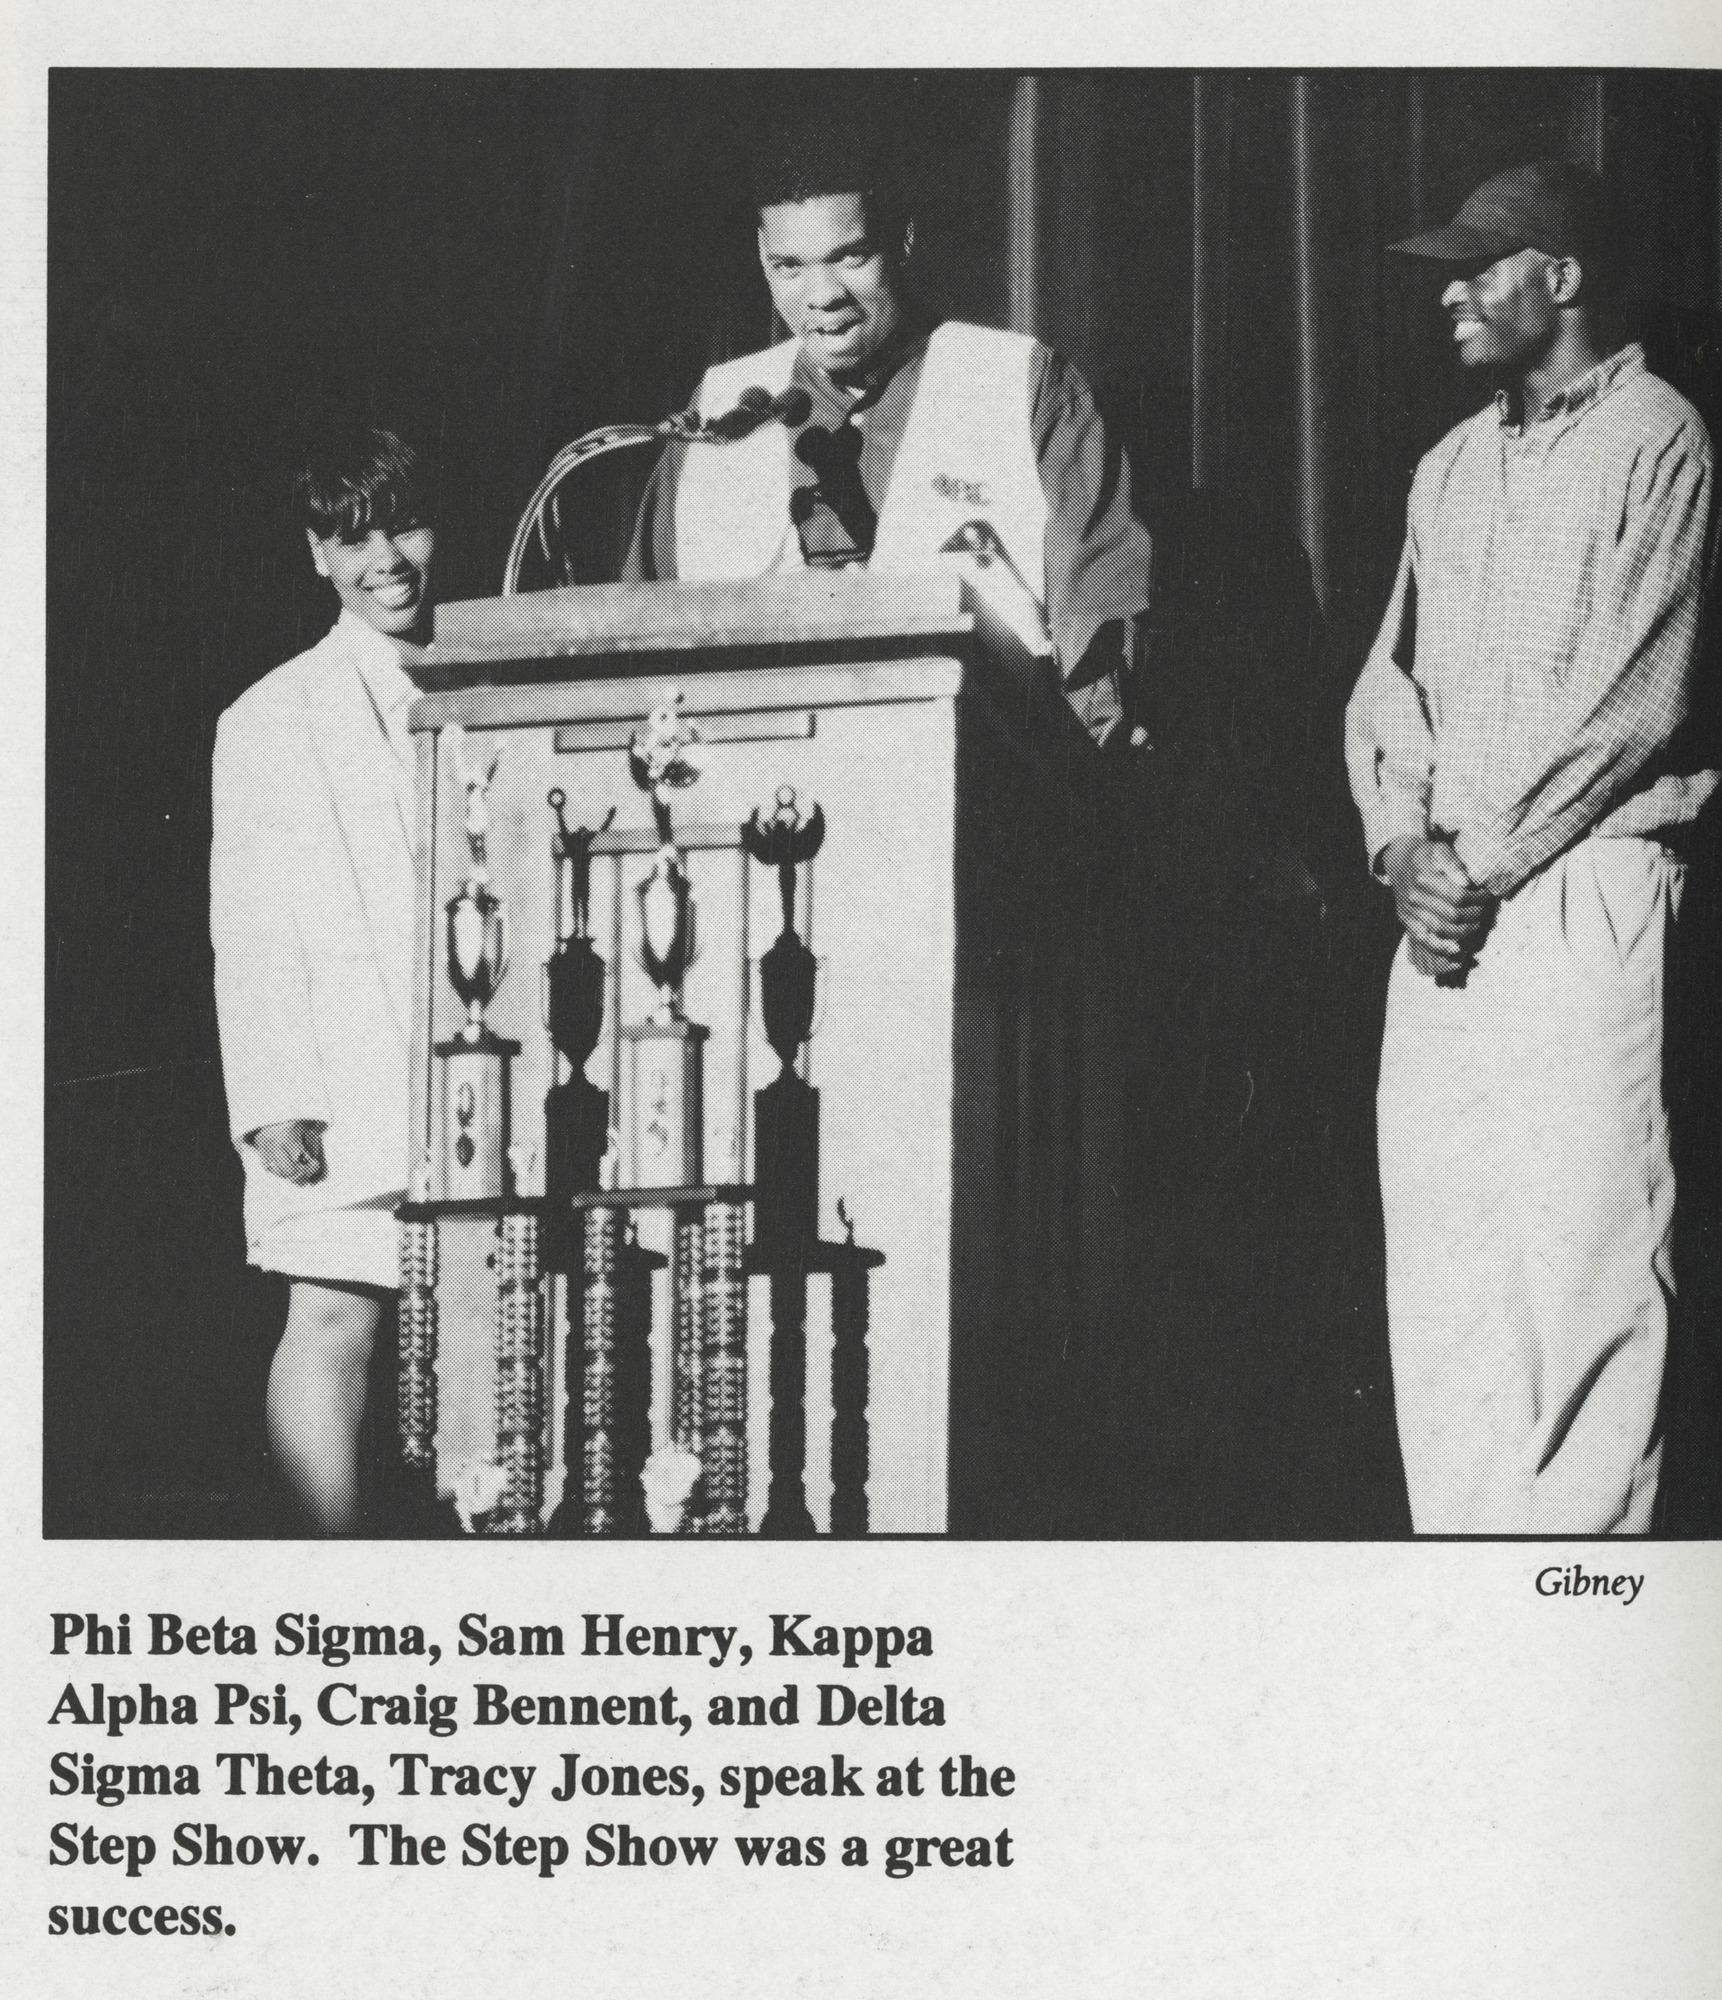 http://spec.lib.vt.edu/pickup/Omeka_upload/Bugle1995_pg96-97_StepShow.jpg